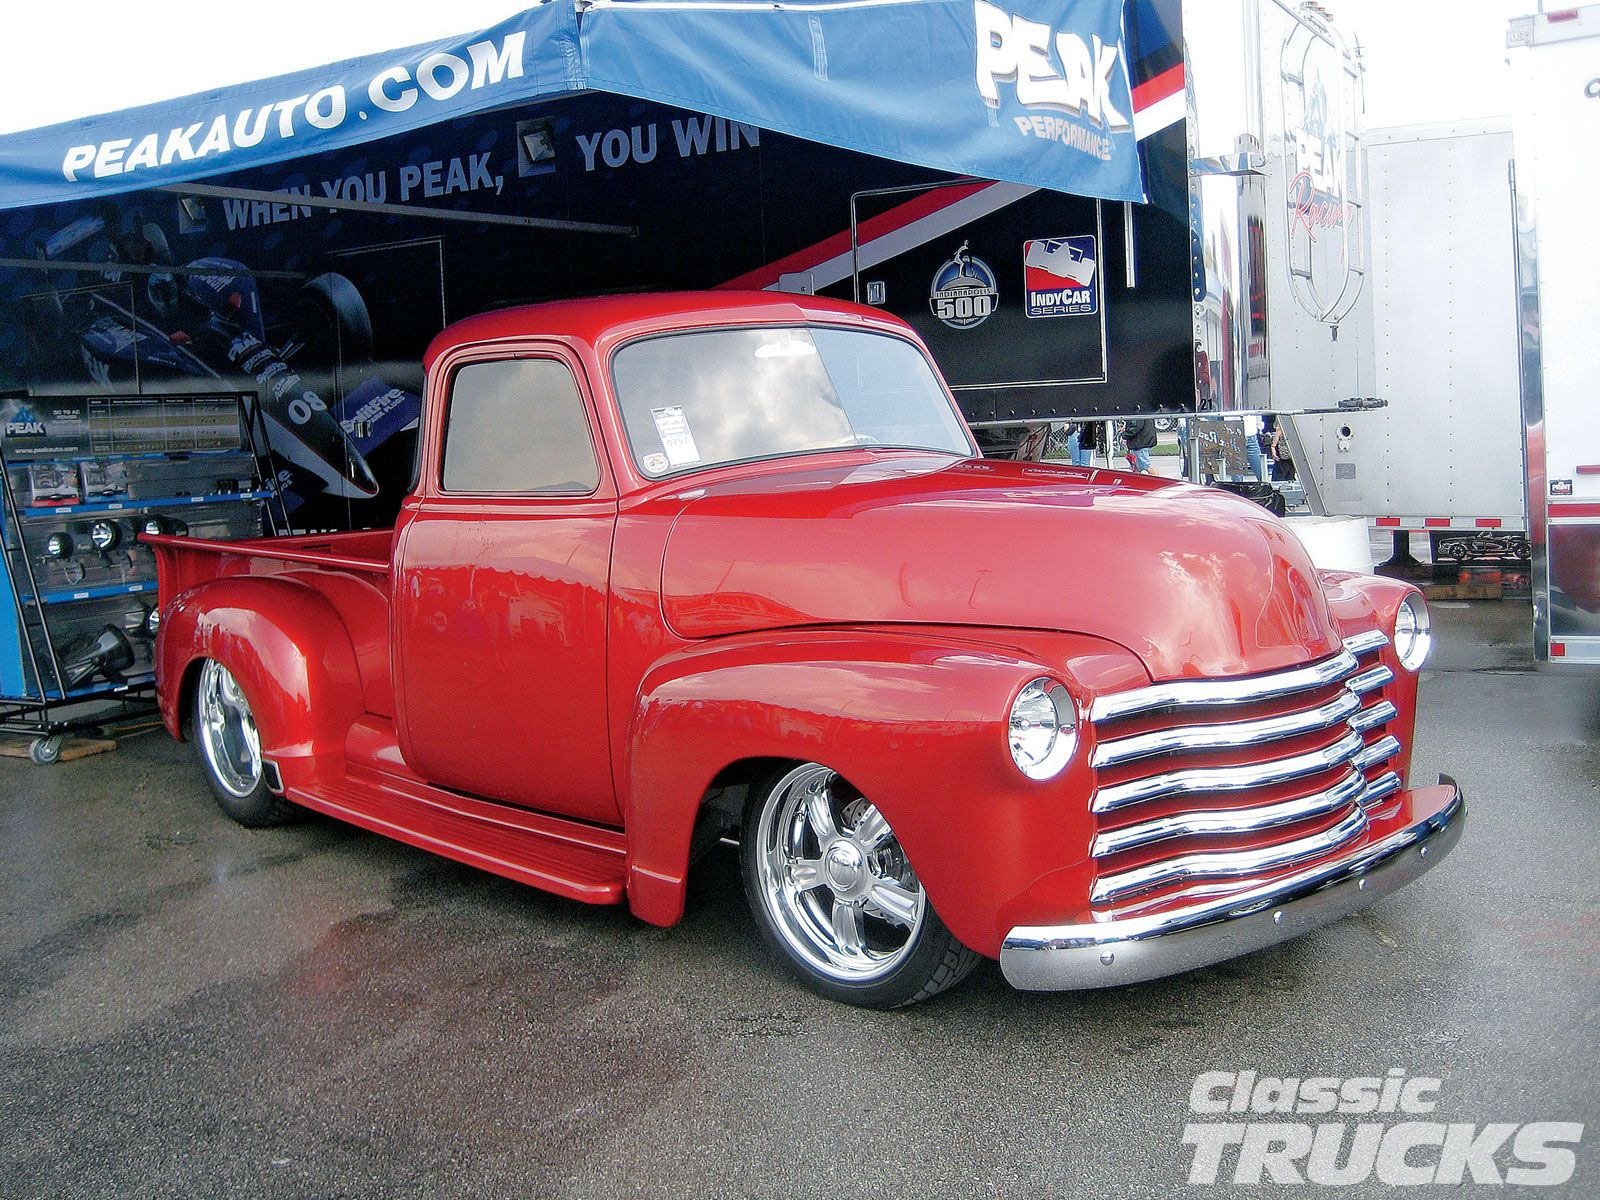 1953 Chevy Truck Either In This Red Or A Dark Blue Color 3 Love